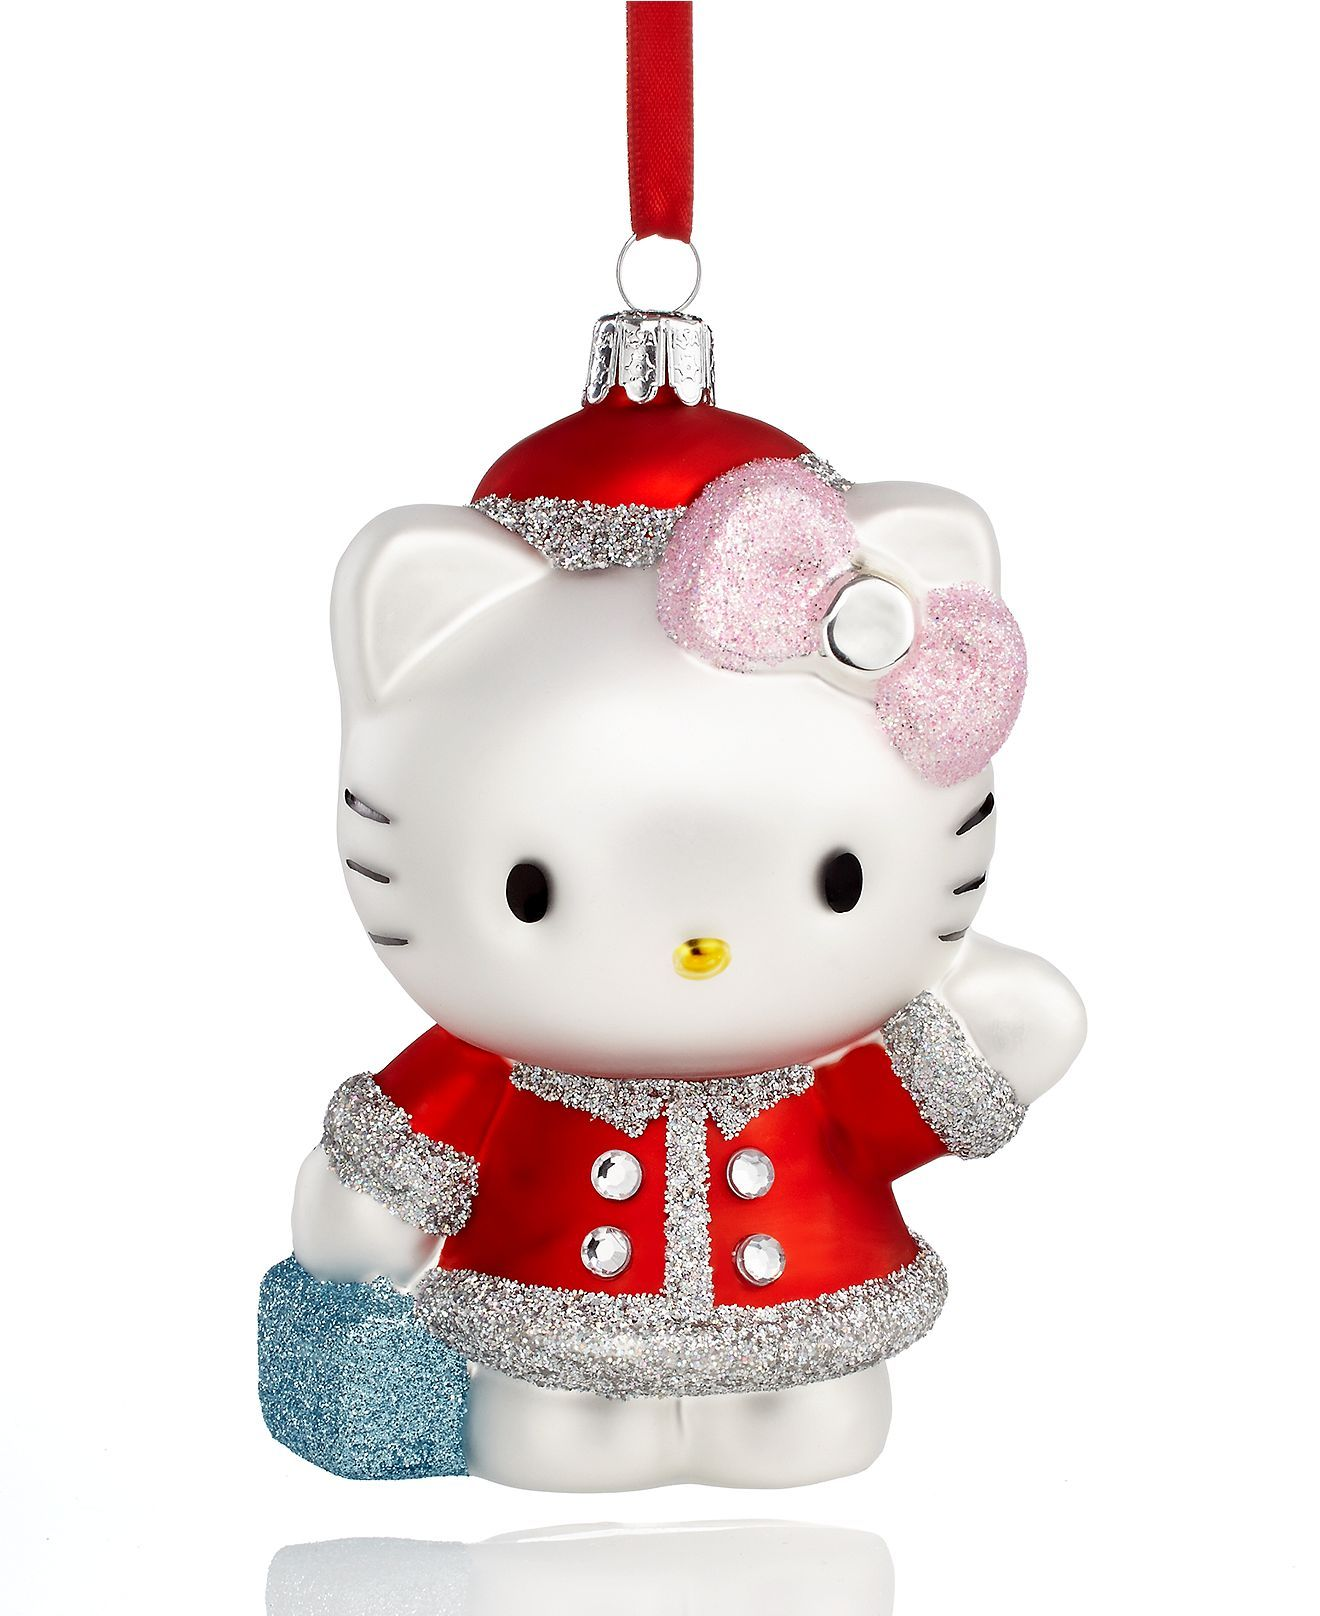 Kurt Adler Christmas Ornament Holiday Hello Kitty Holiday Lane